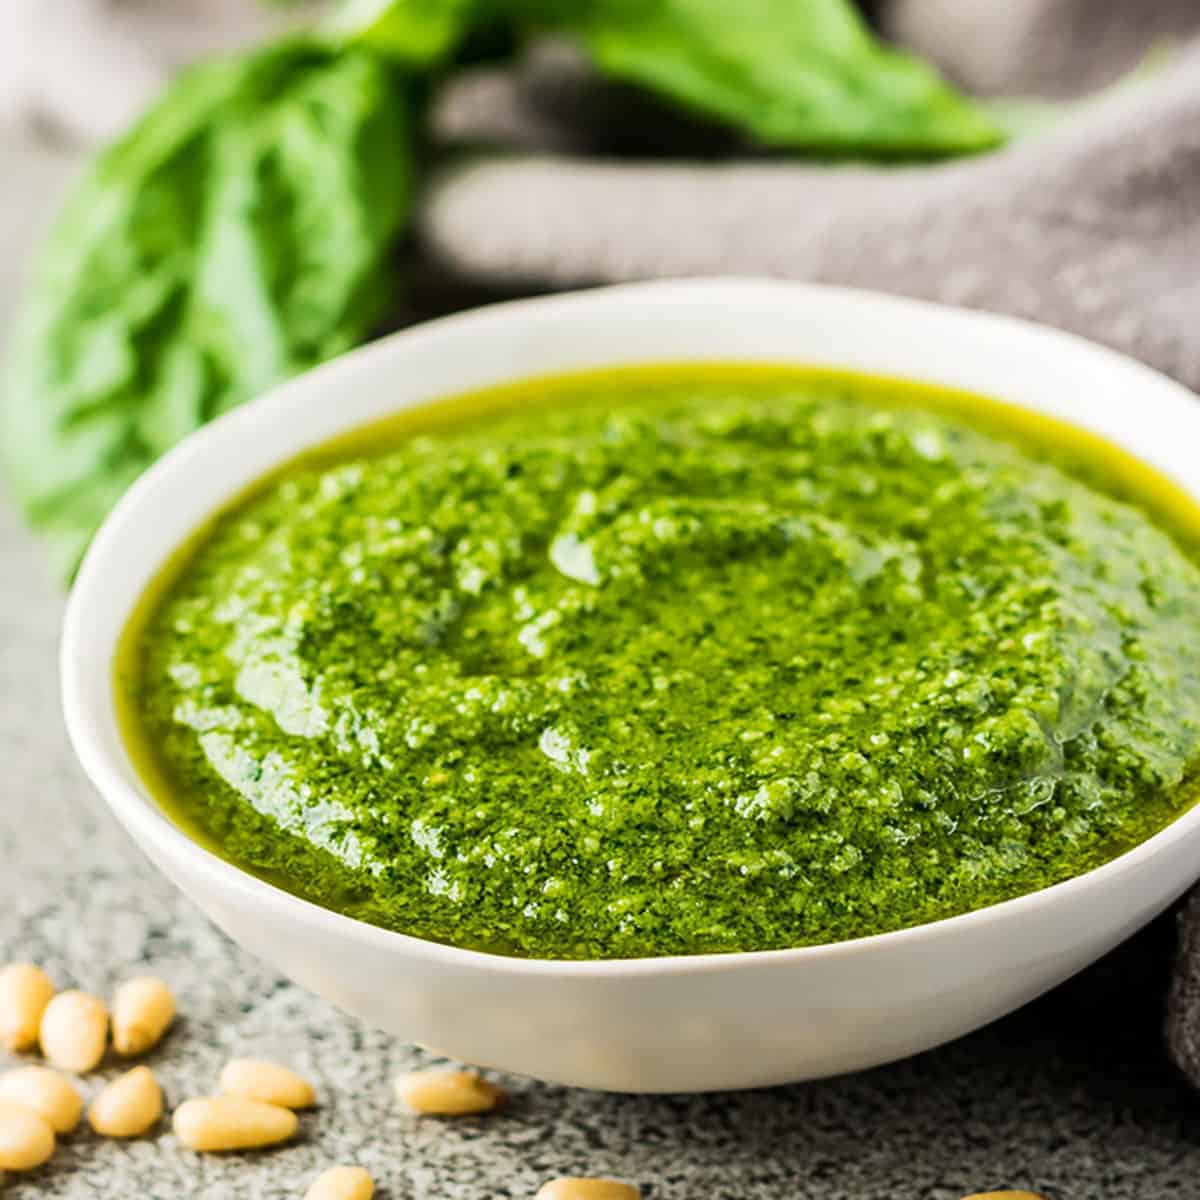 Small bowl of pesto sauce with fresh pine nuts.